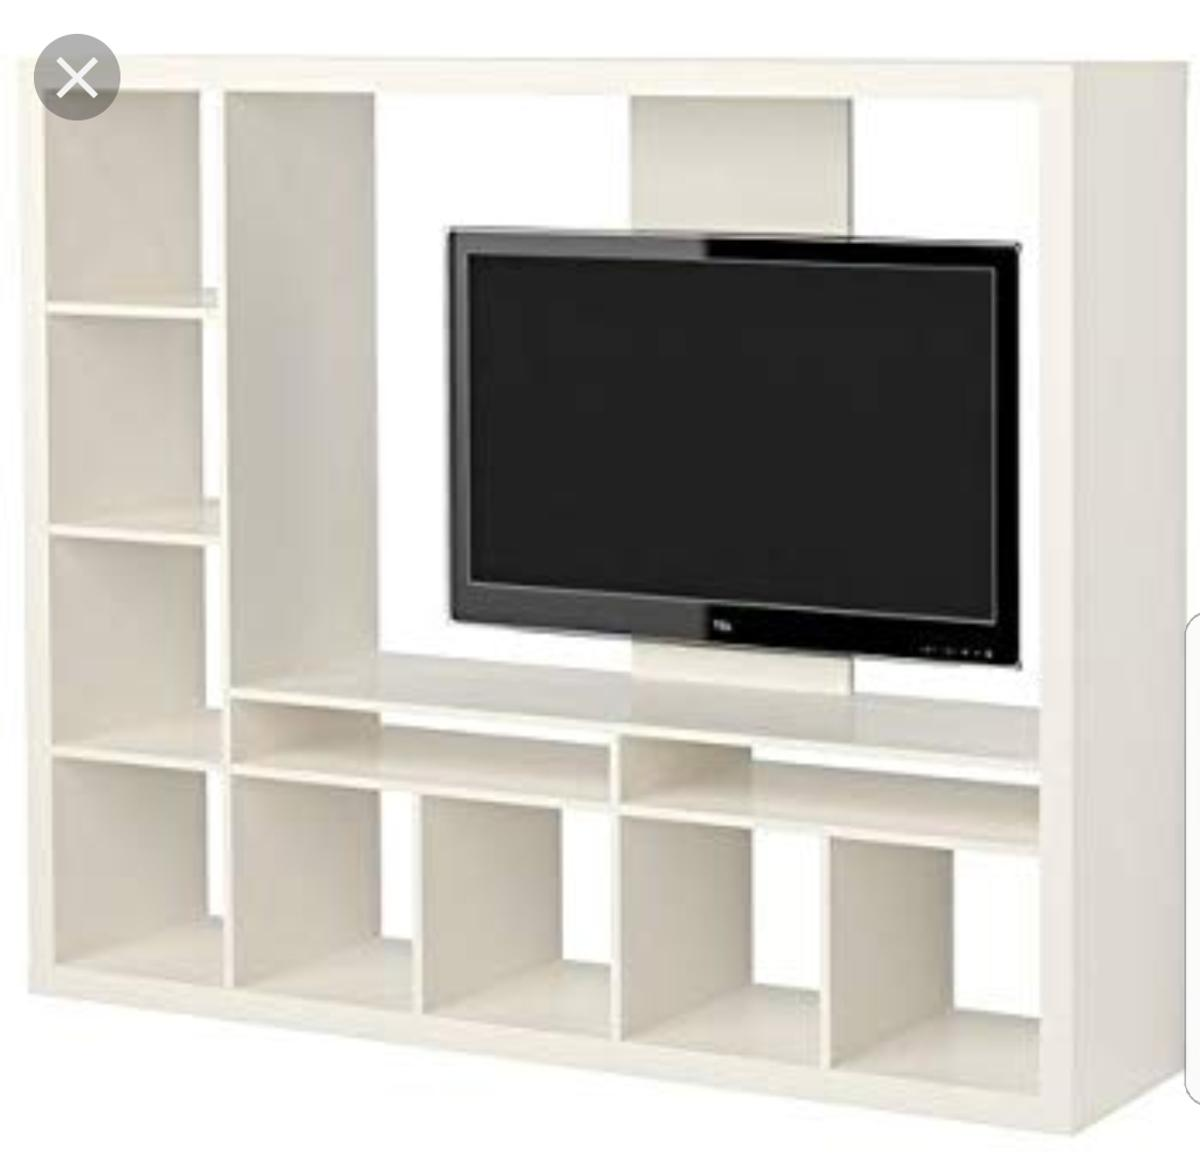 Ikea Expedit Tv Unit With Storage In Hp3 Dacorum Fur 20 00 Zum Verkauf Shpock De